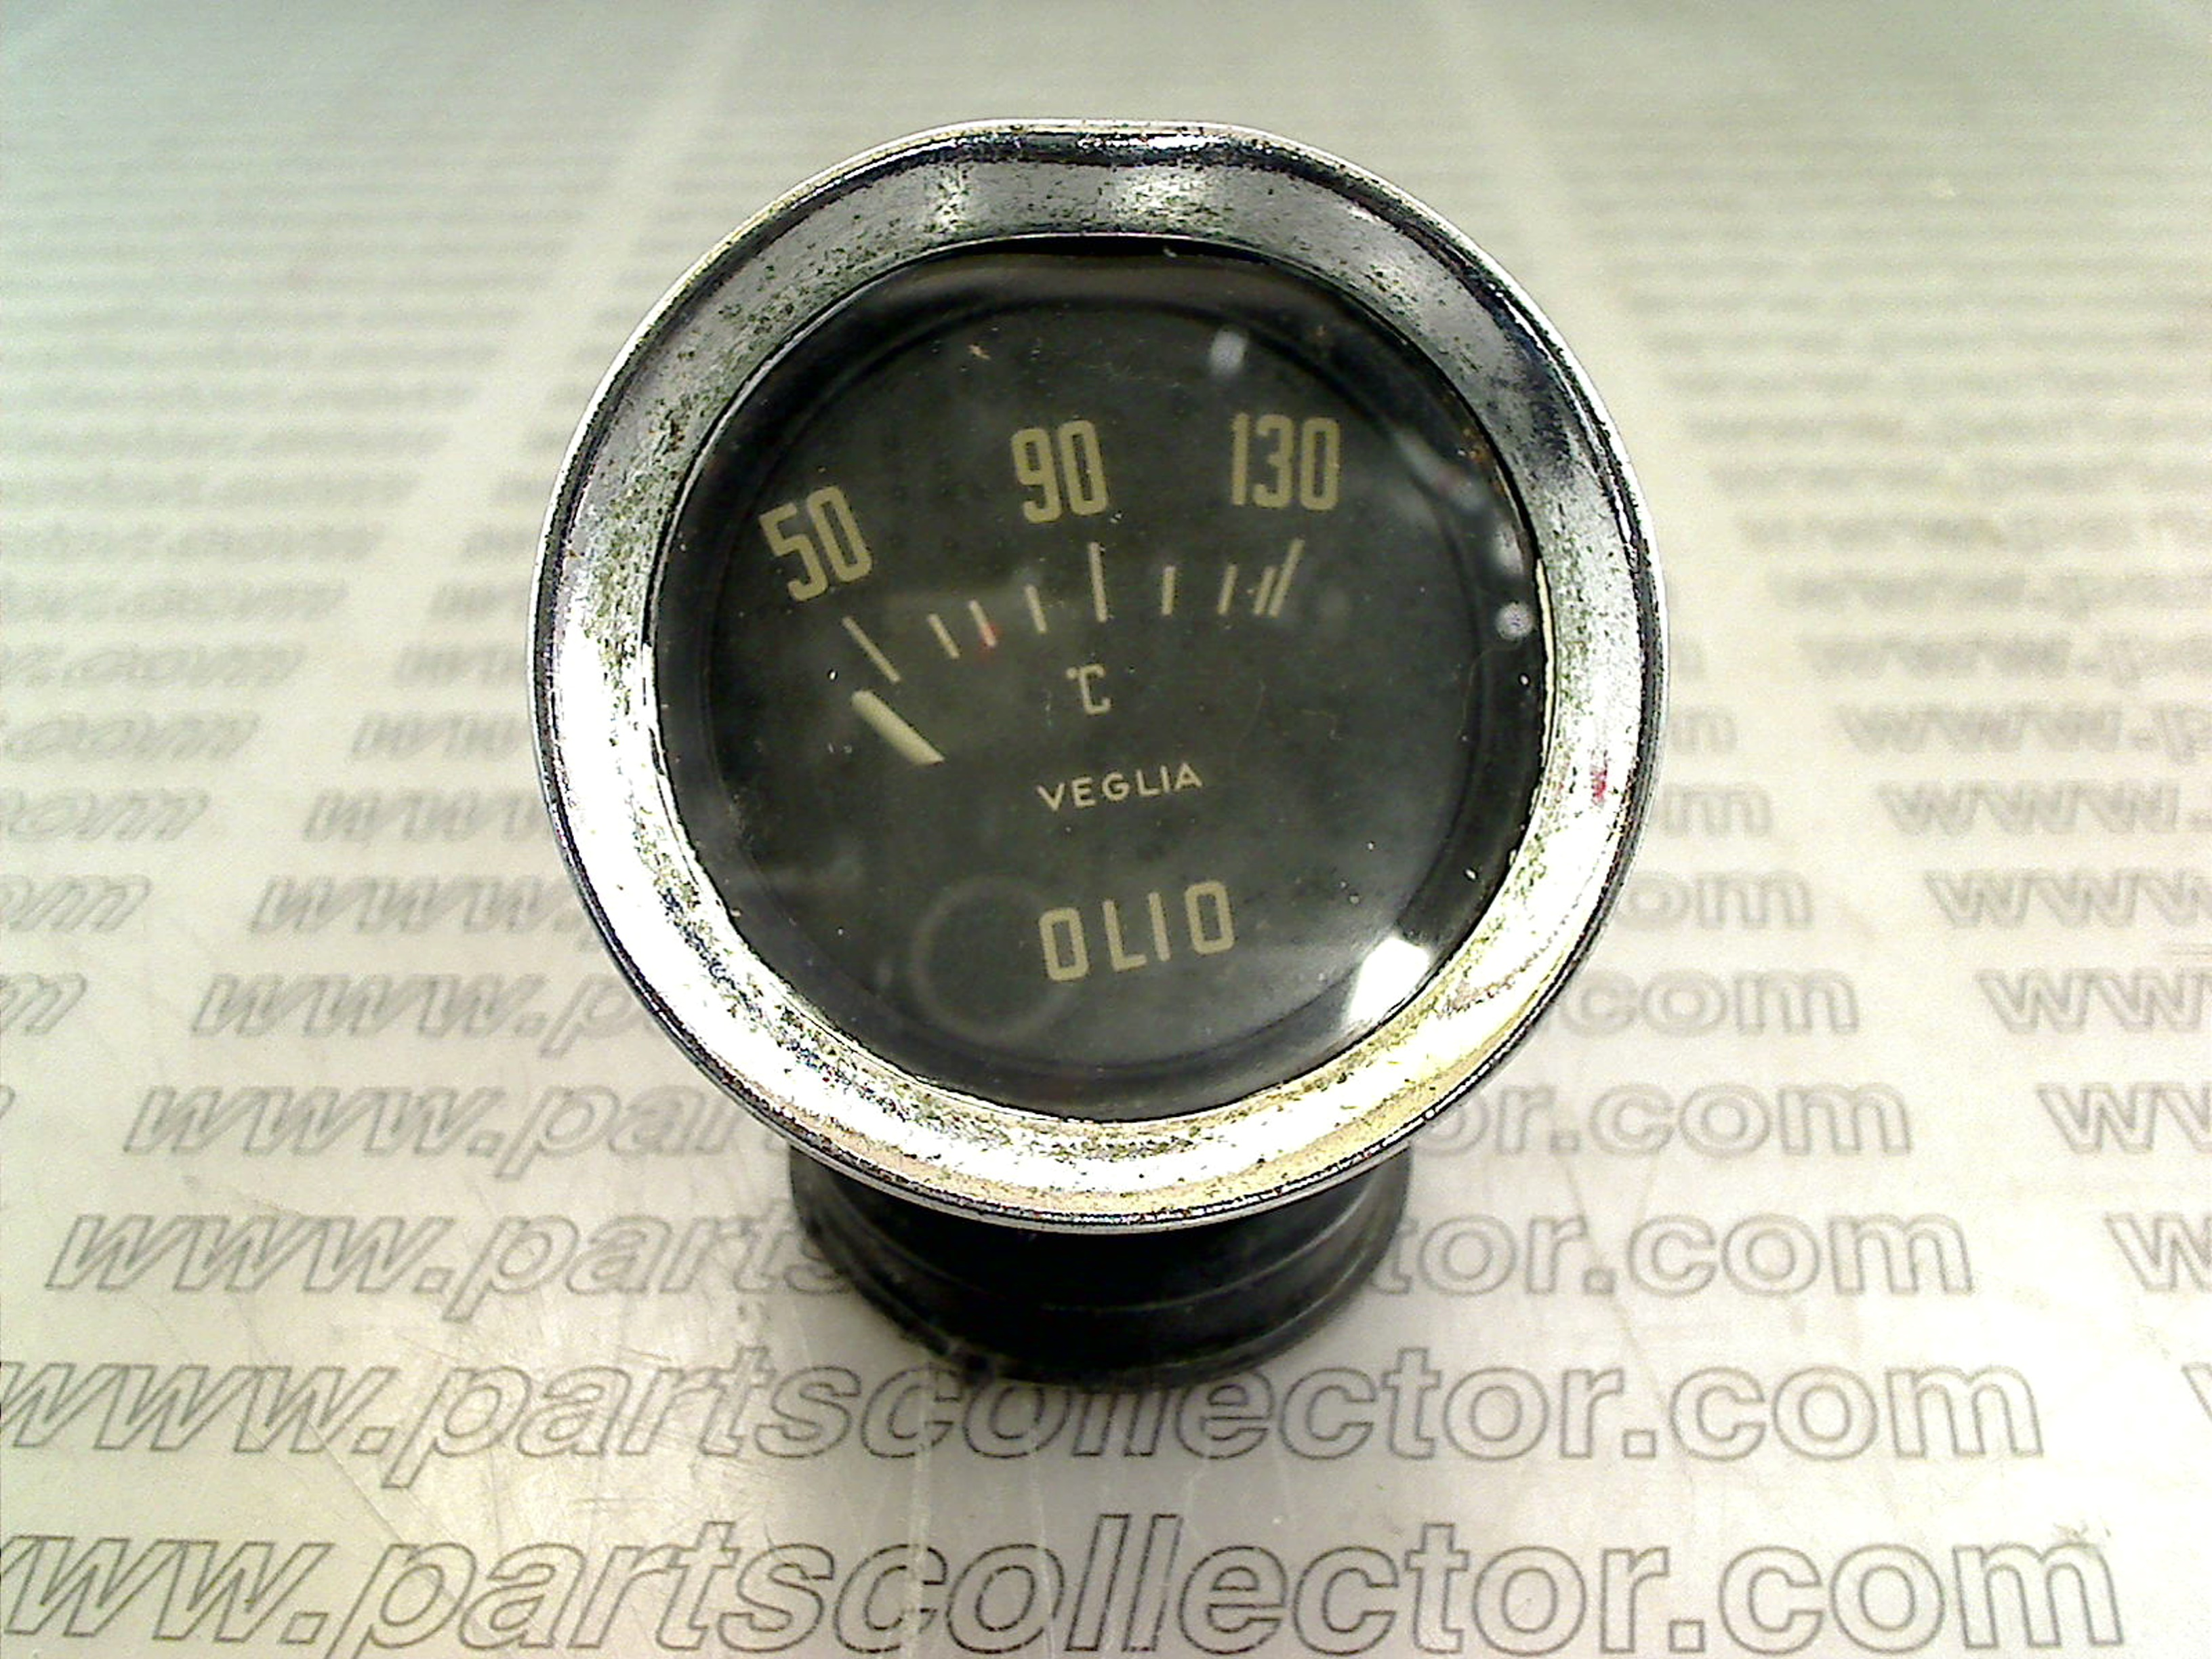 OIL TEMPERATURE GAUGE